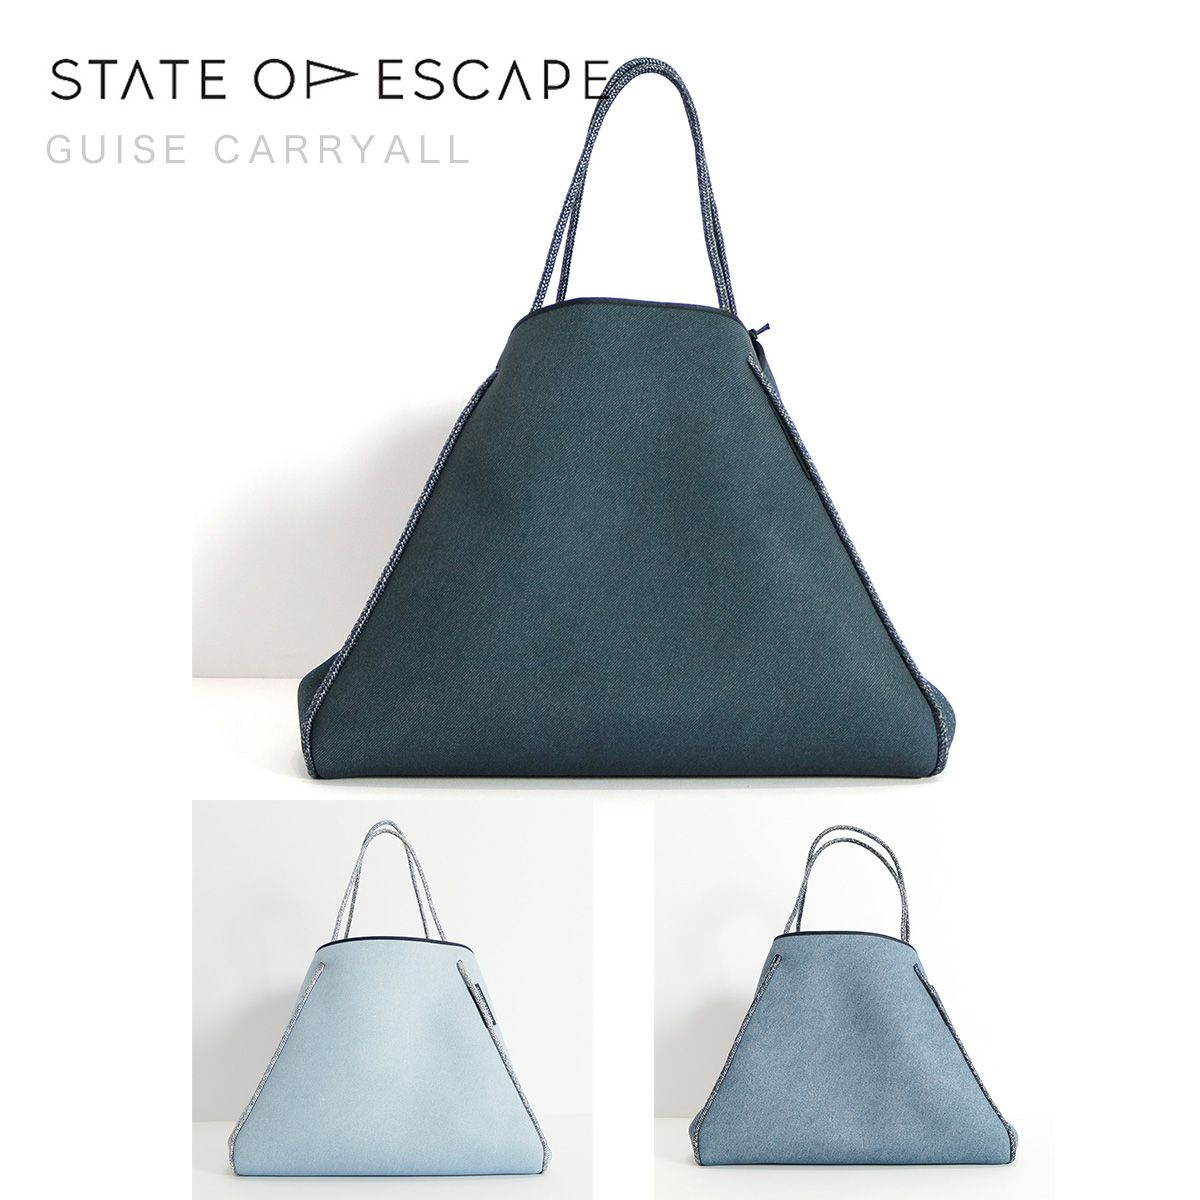 STATE OF ESCAPE ステイトオブエスケープ GUISE CARRYALL トートバッグ インディゴ ブルー ライトブルー |ジムバッグ ママバッグ 18SS/送料無料